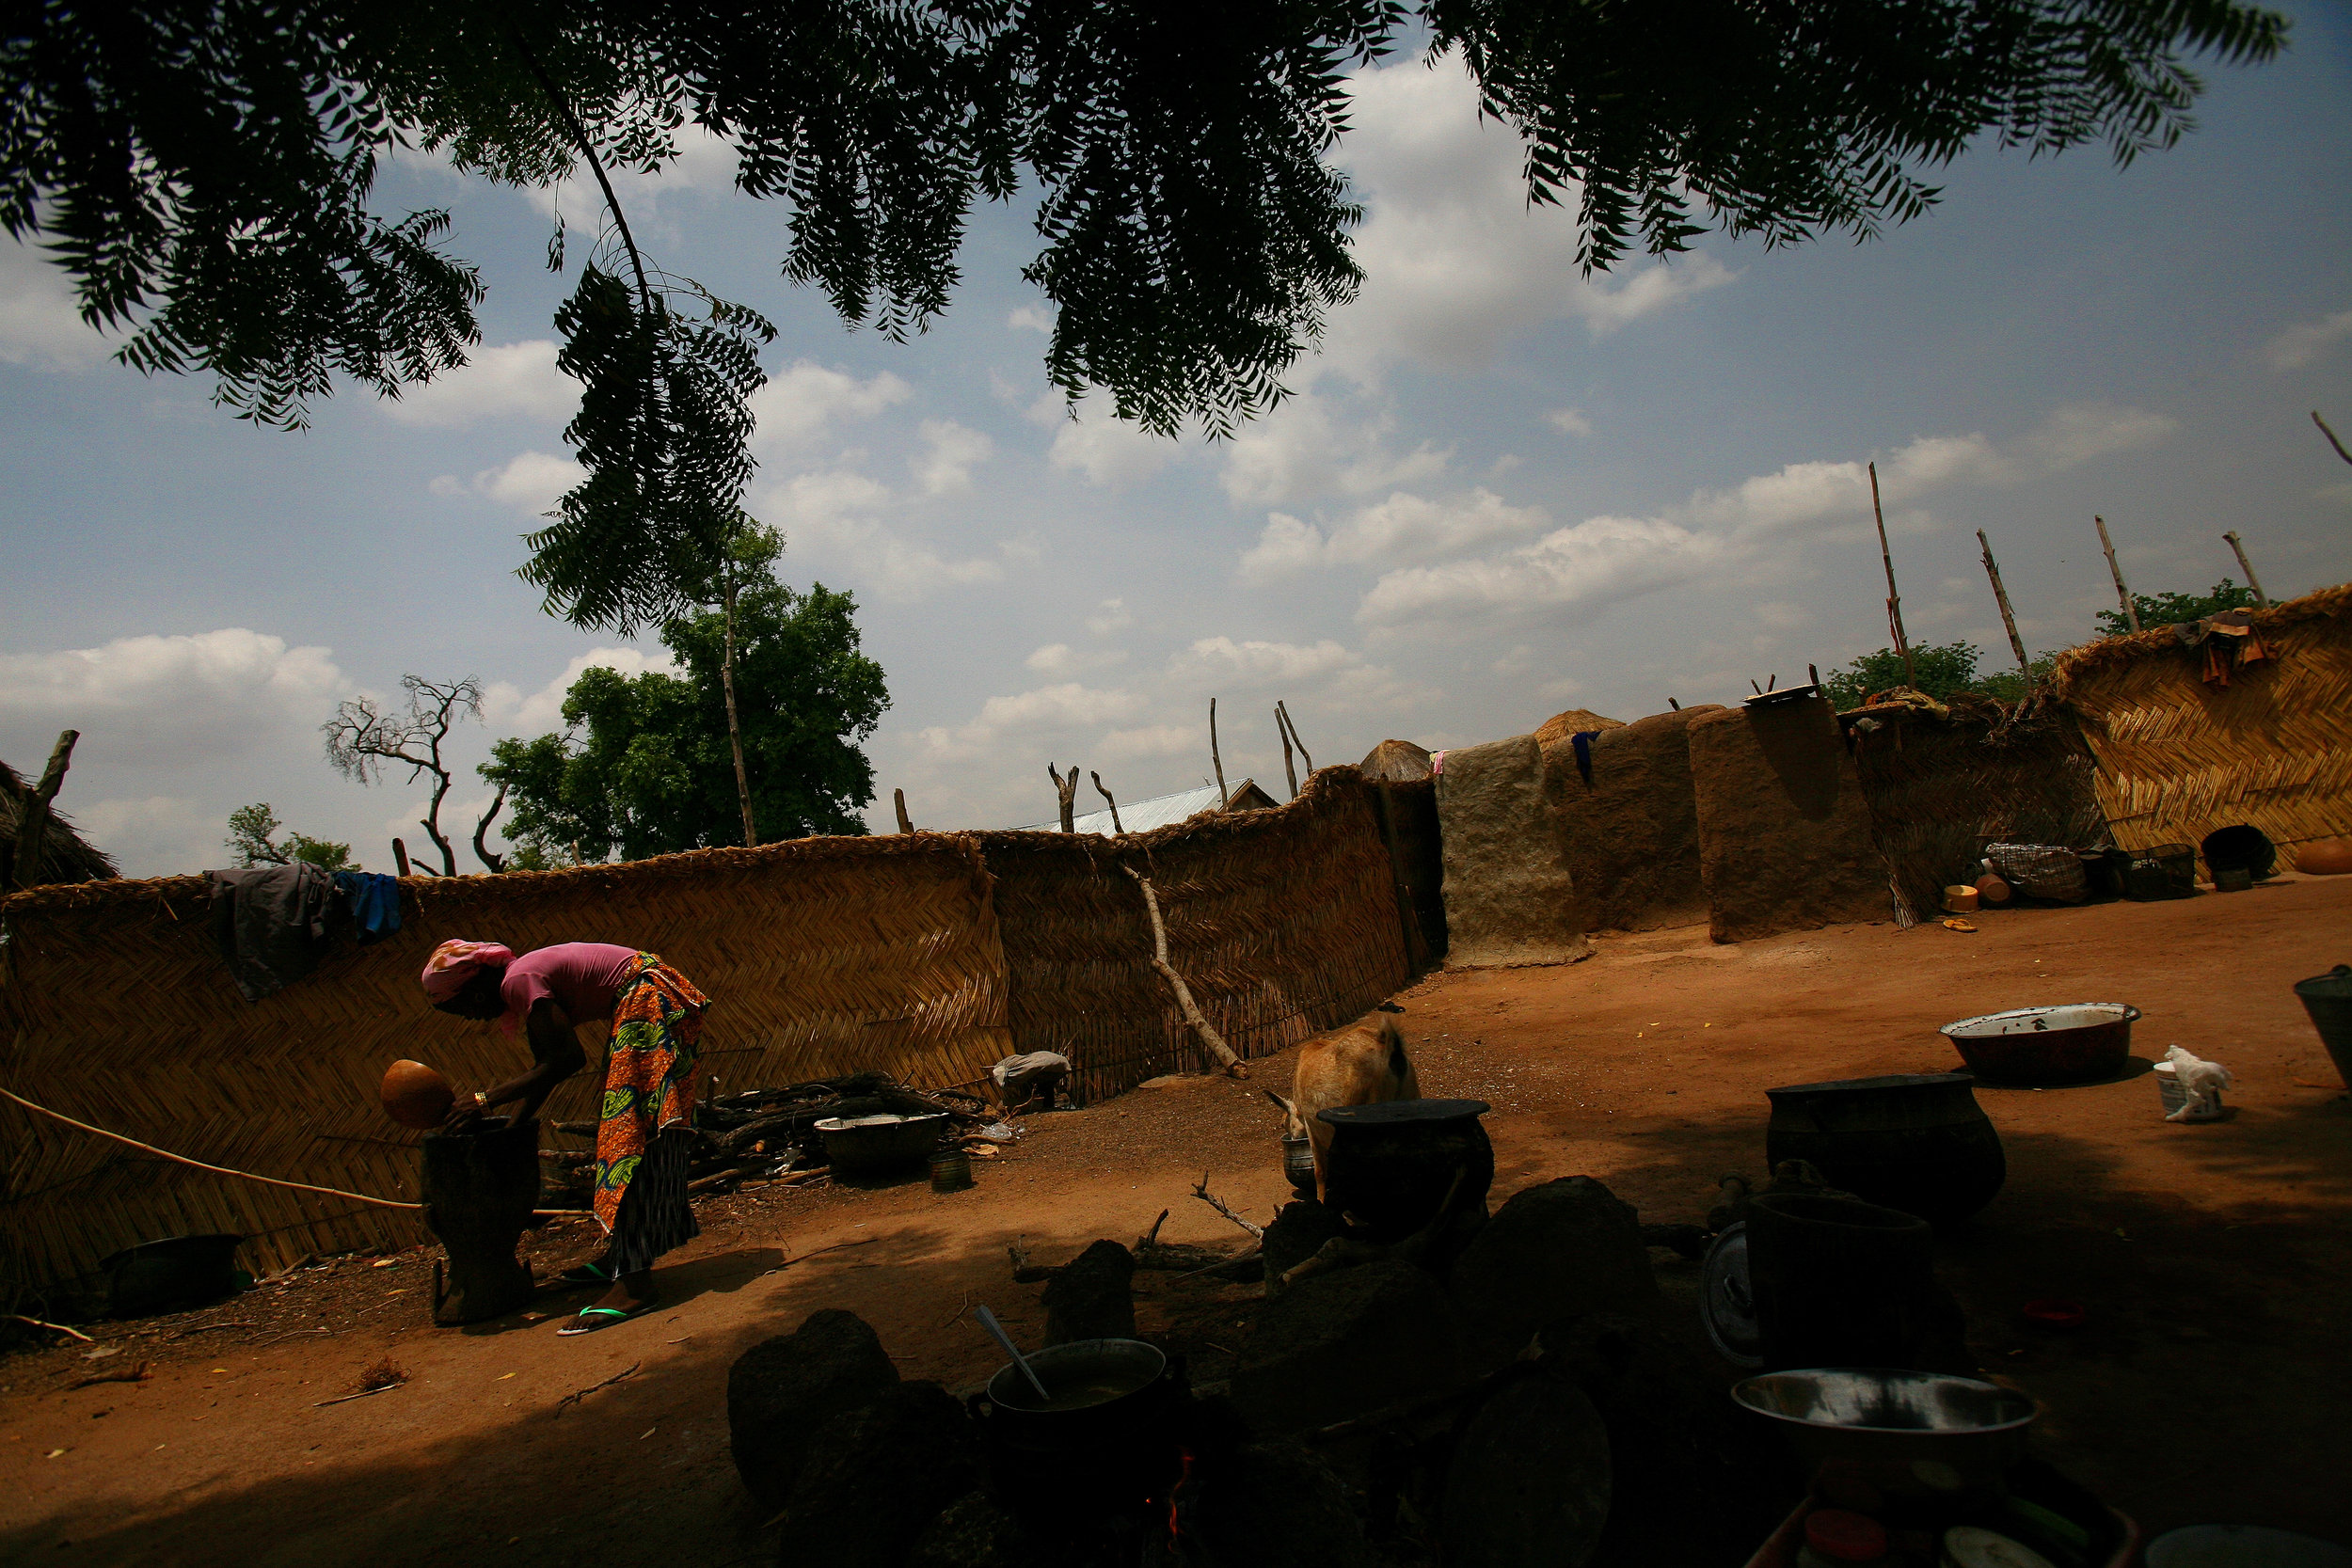 Amariya does chores in her husband's family's compound in Tampion, Ghana on March 25, 2009.